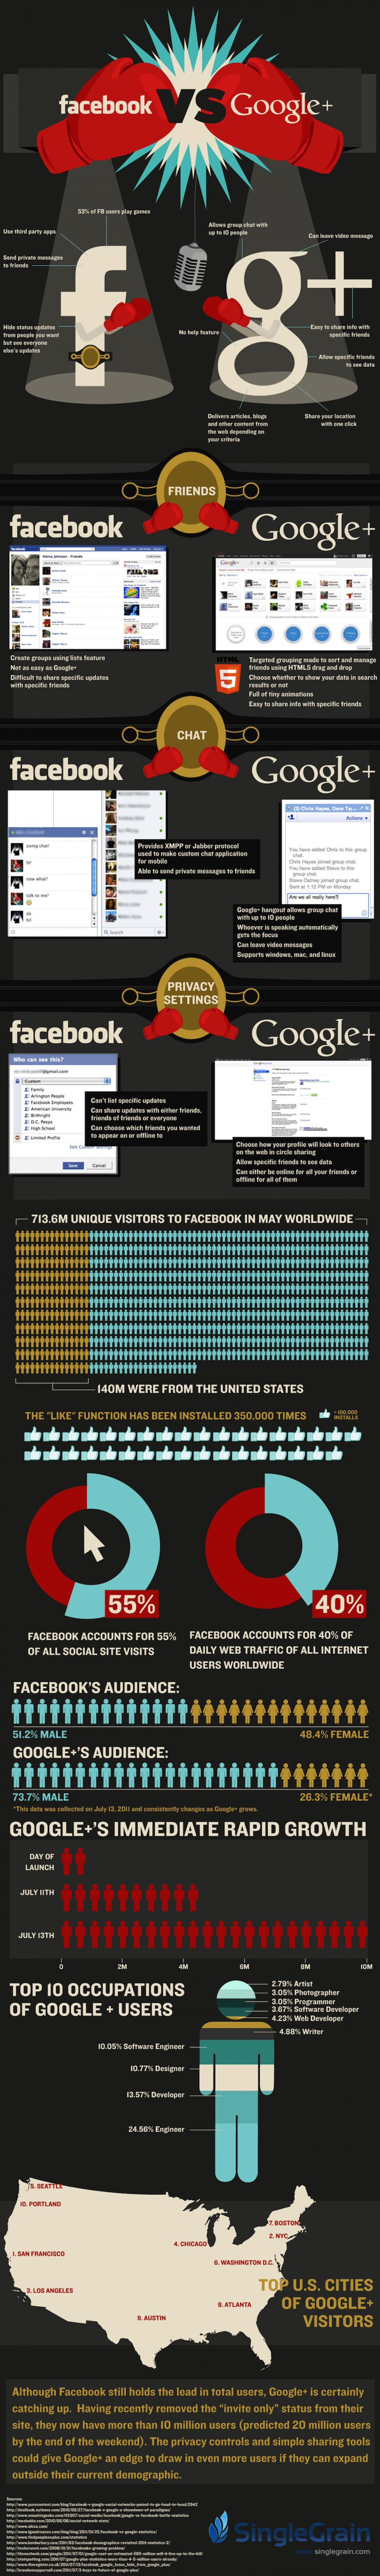 Facebook Vs Google Plus Features  Infographic